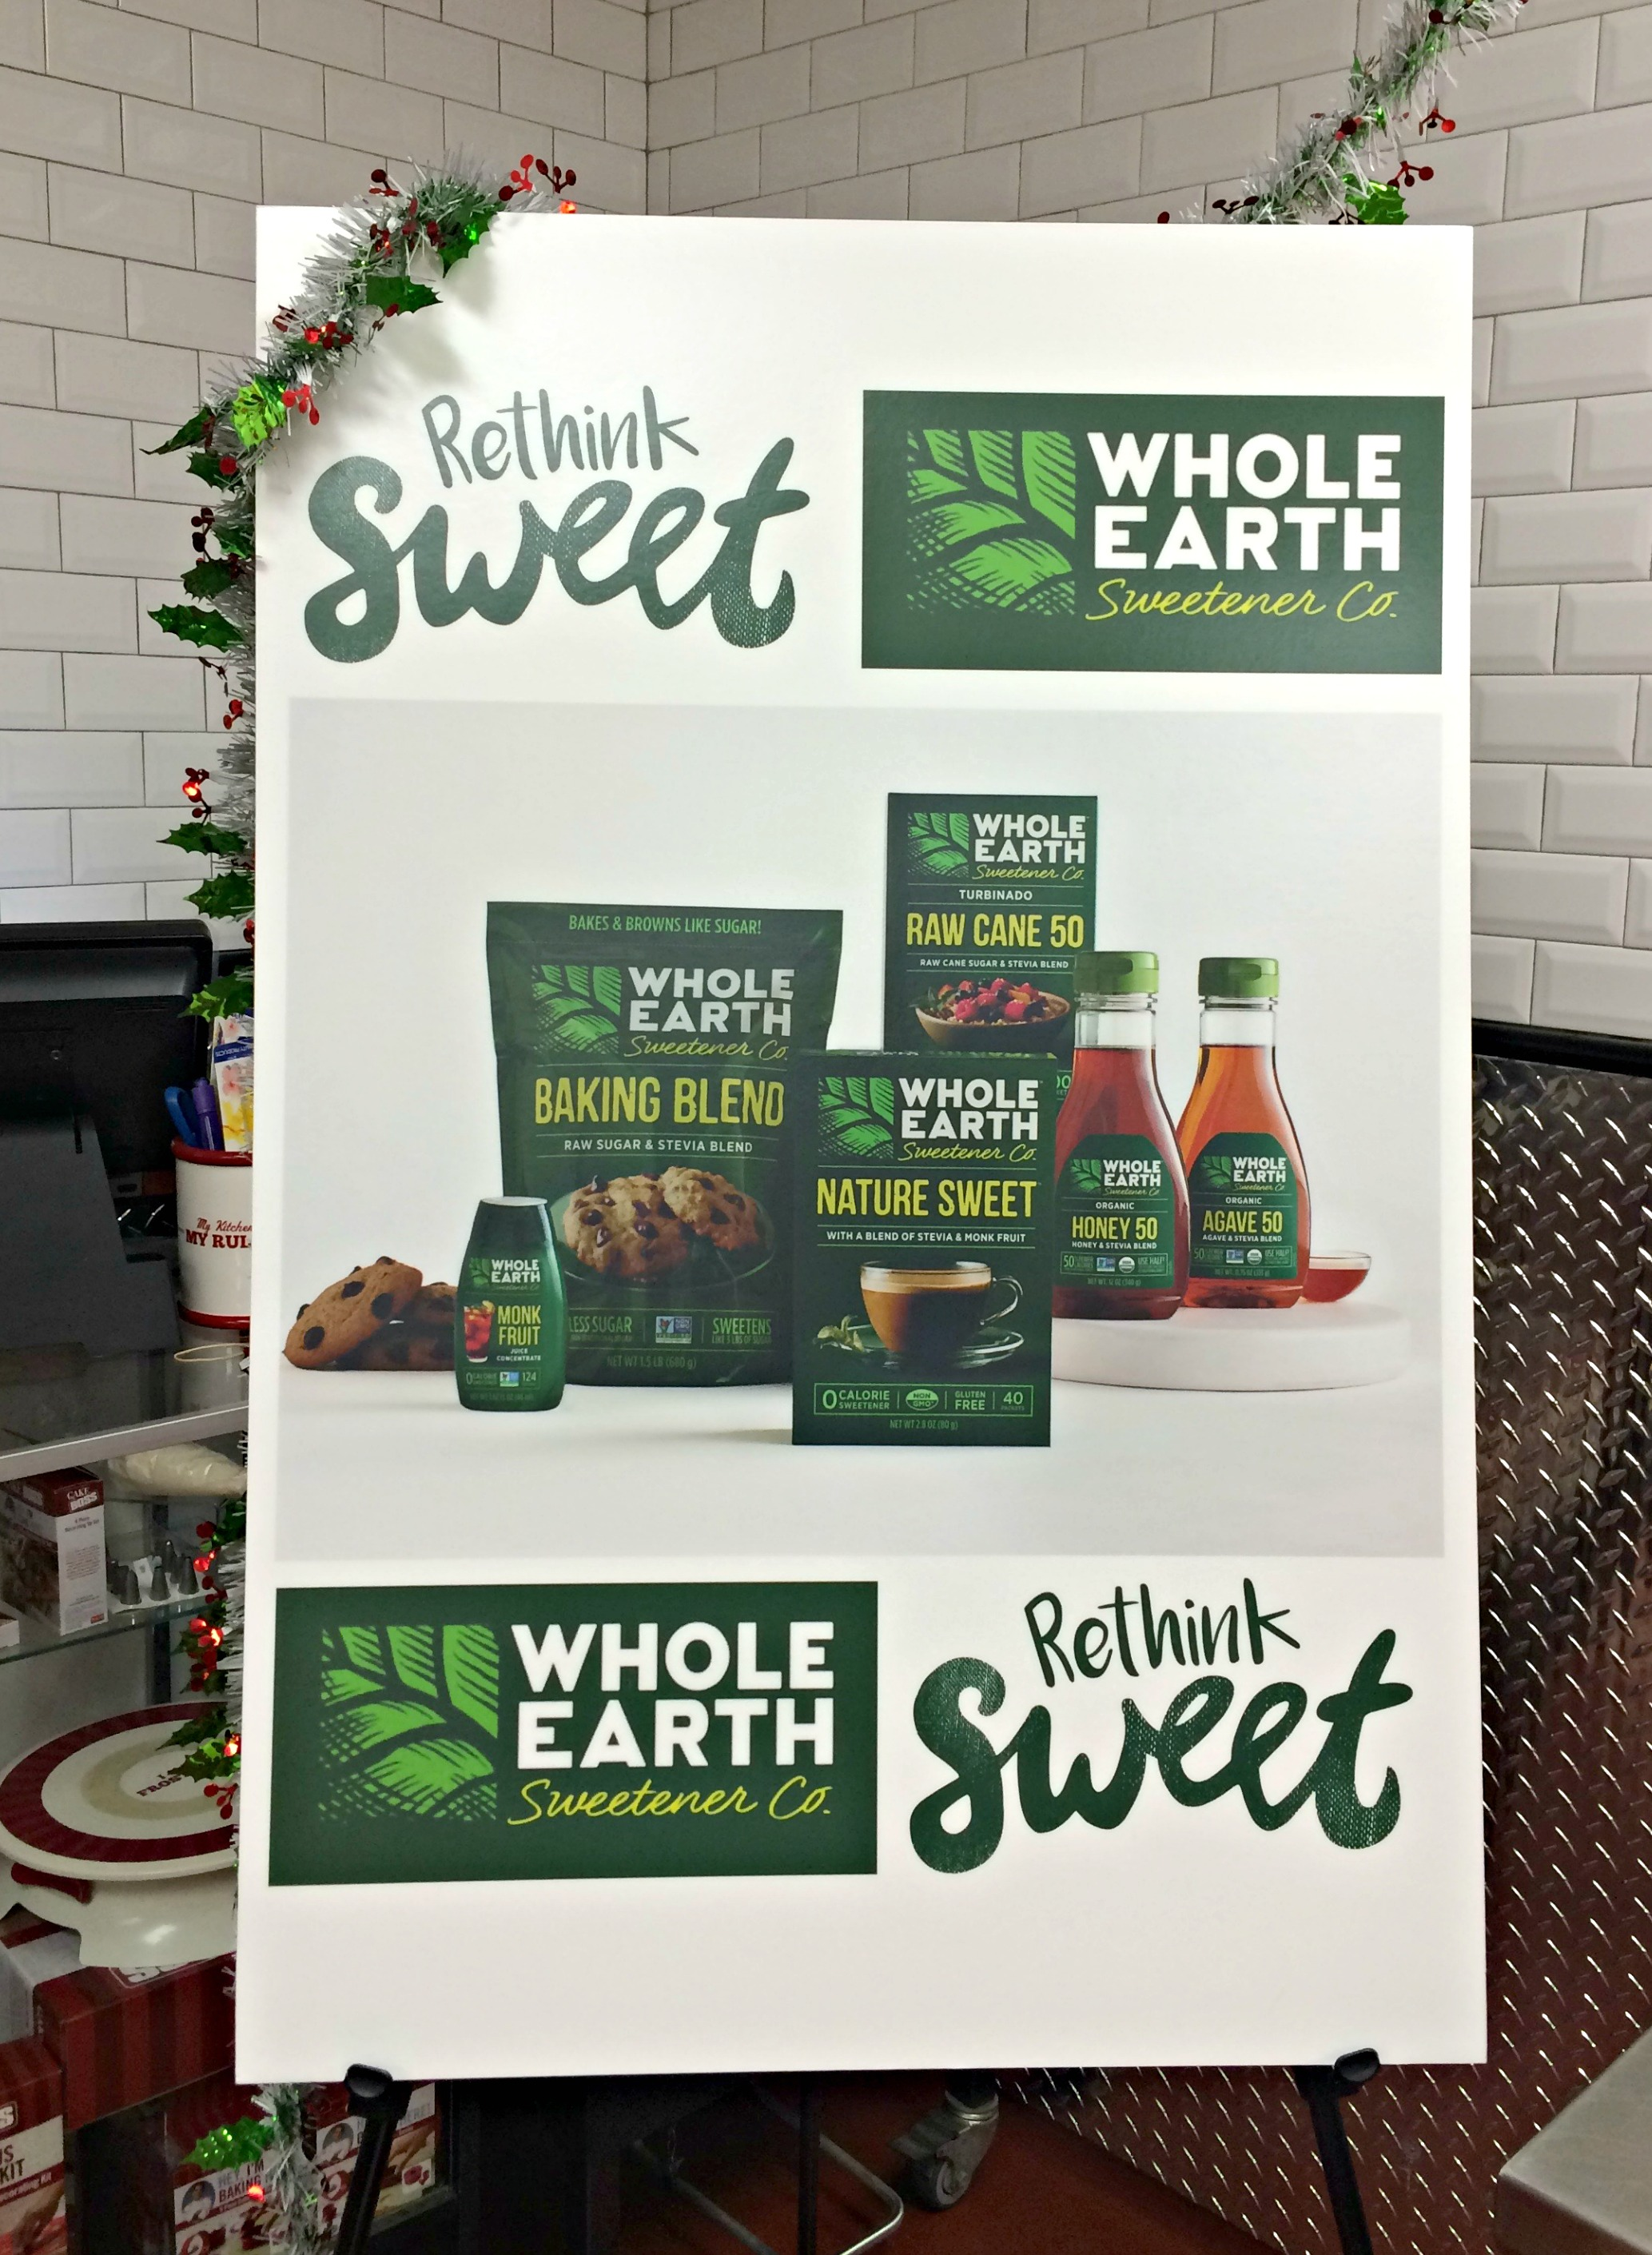 rethink-sweet-whole-earth-sweetener-co